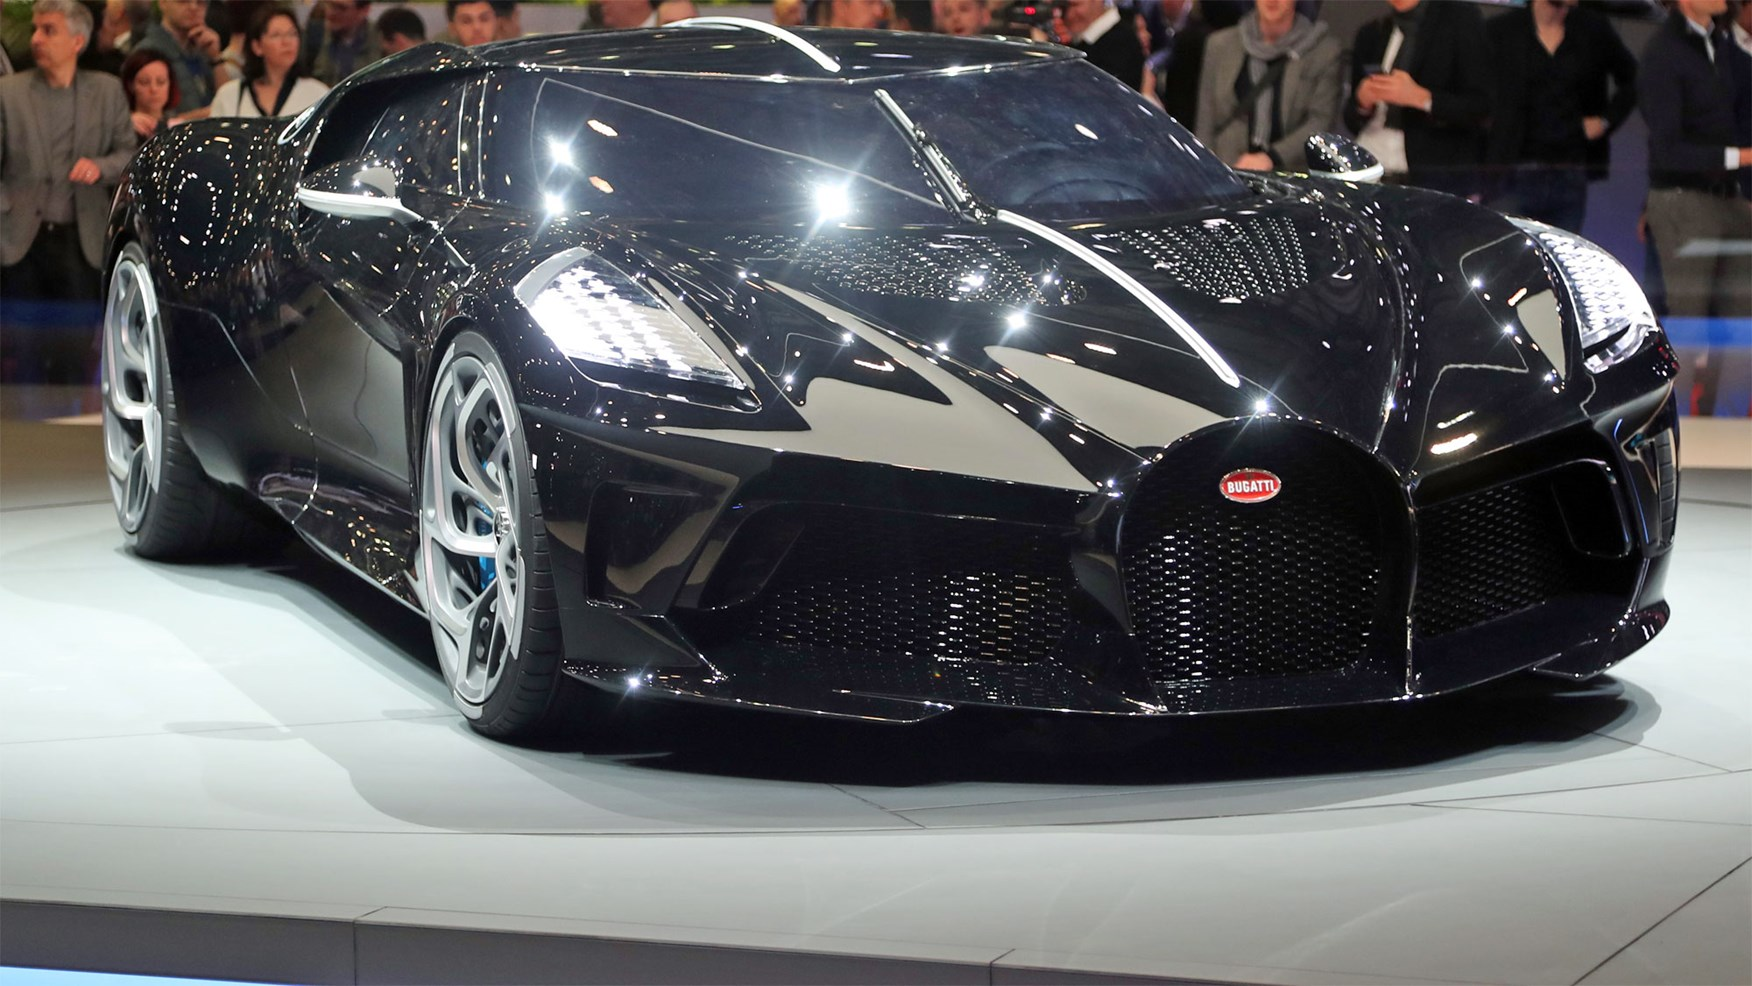 The Bugatti La Voiture Noire Has The Nicest Rear End In: Bugatti Voiture Noire: £13m Hyper-coupe Is World's Most